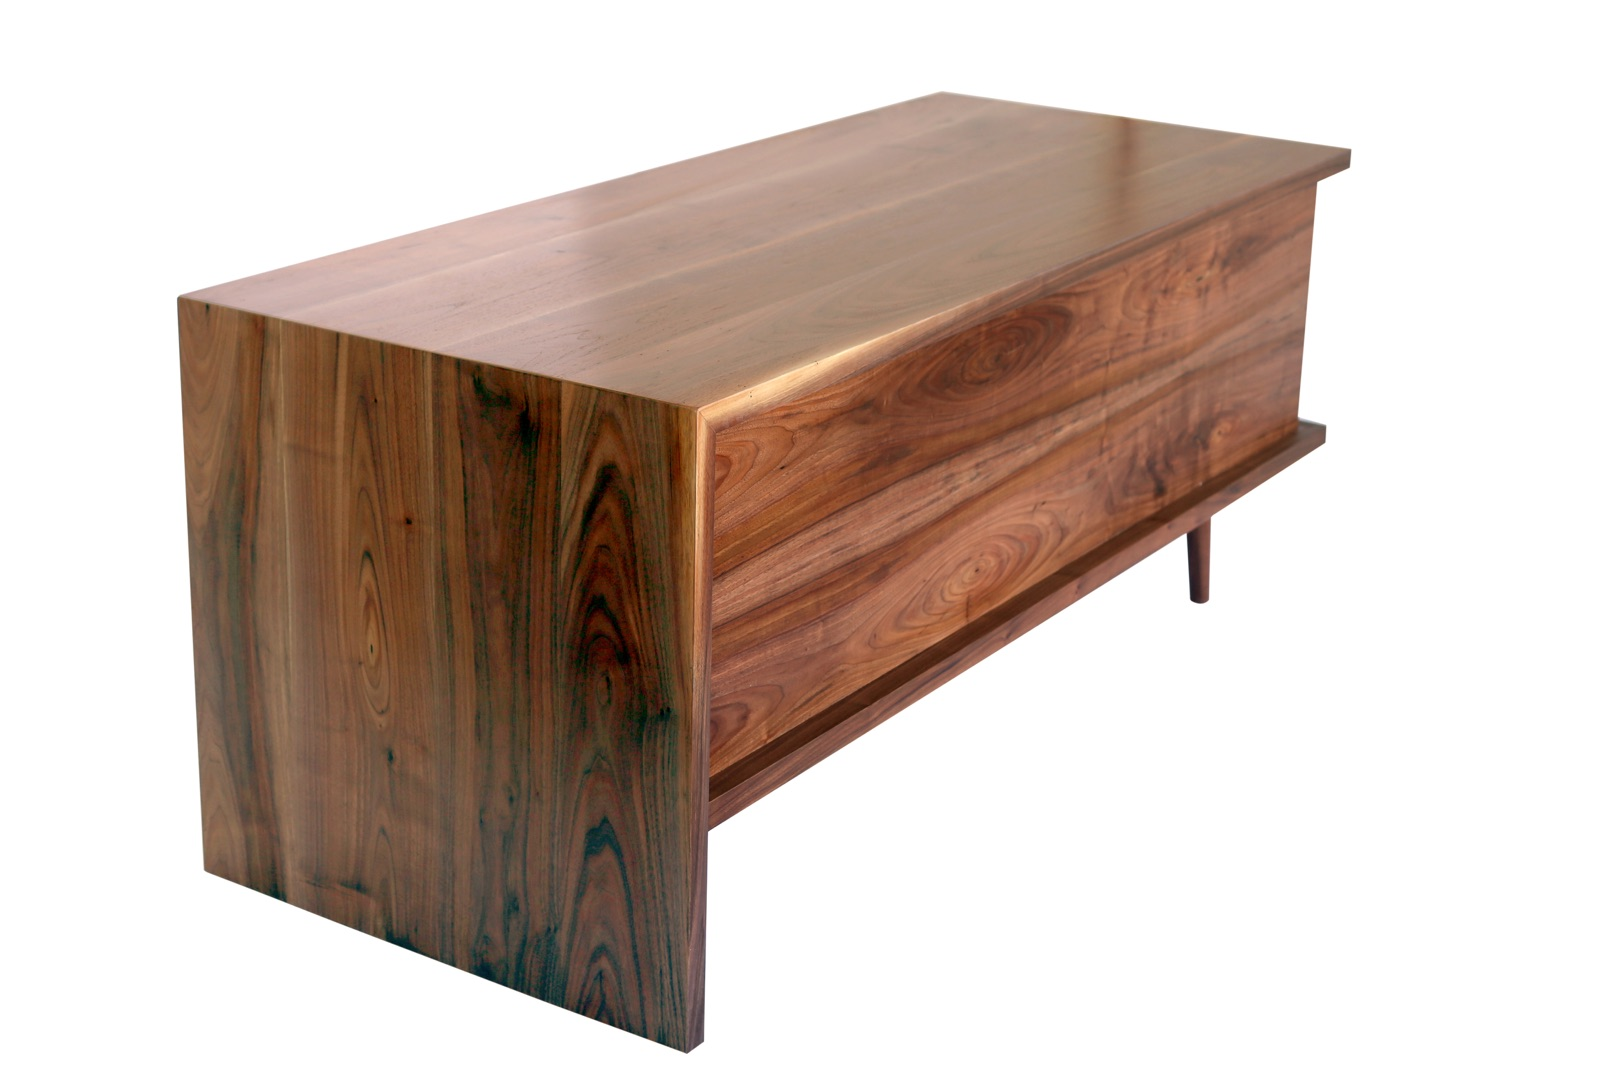 Custom Furniture - We design and create custom pieces for your home and business.